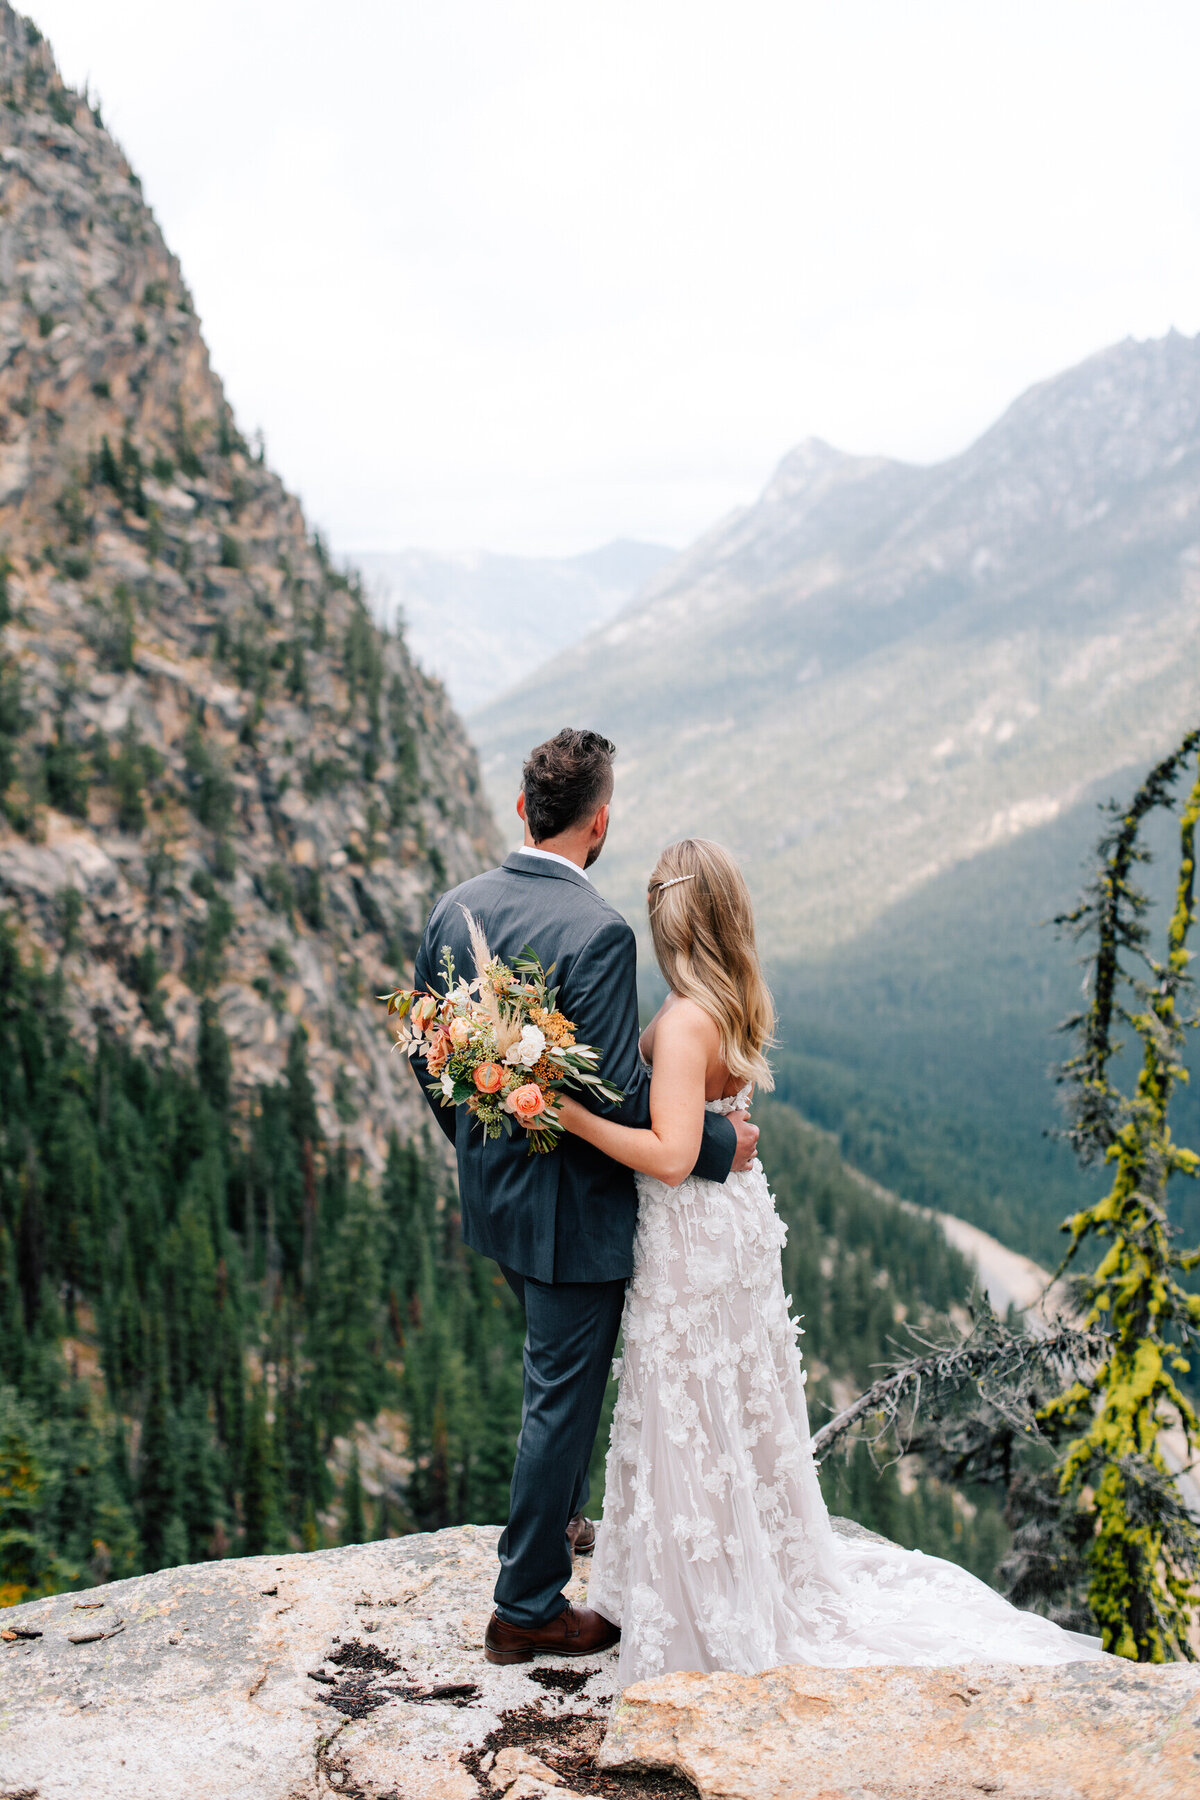 Bride and groom at Washington Pass Overlook on the North Cascades Highway